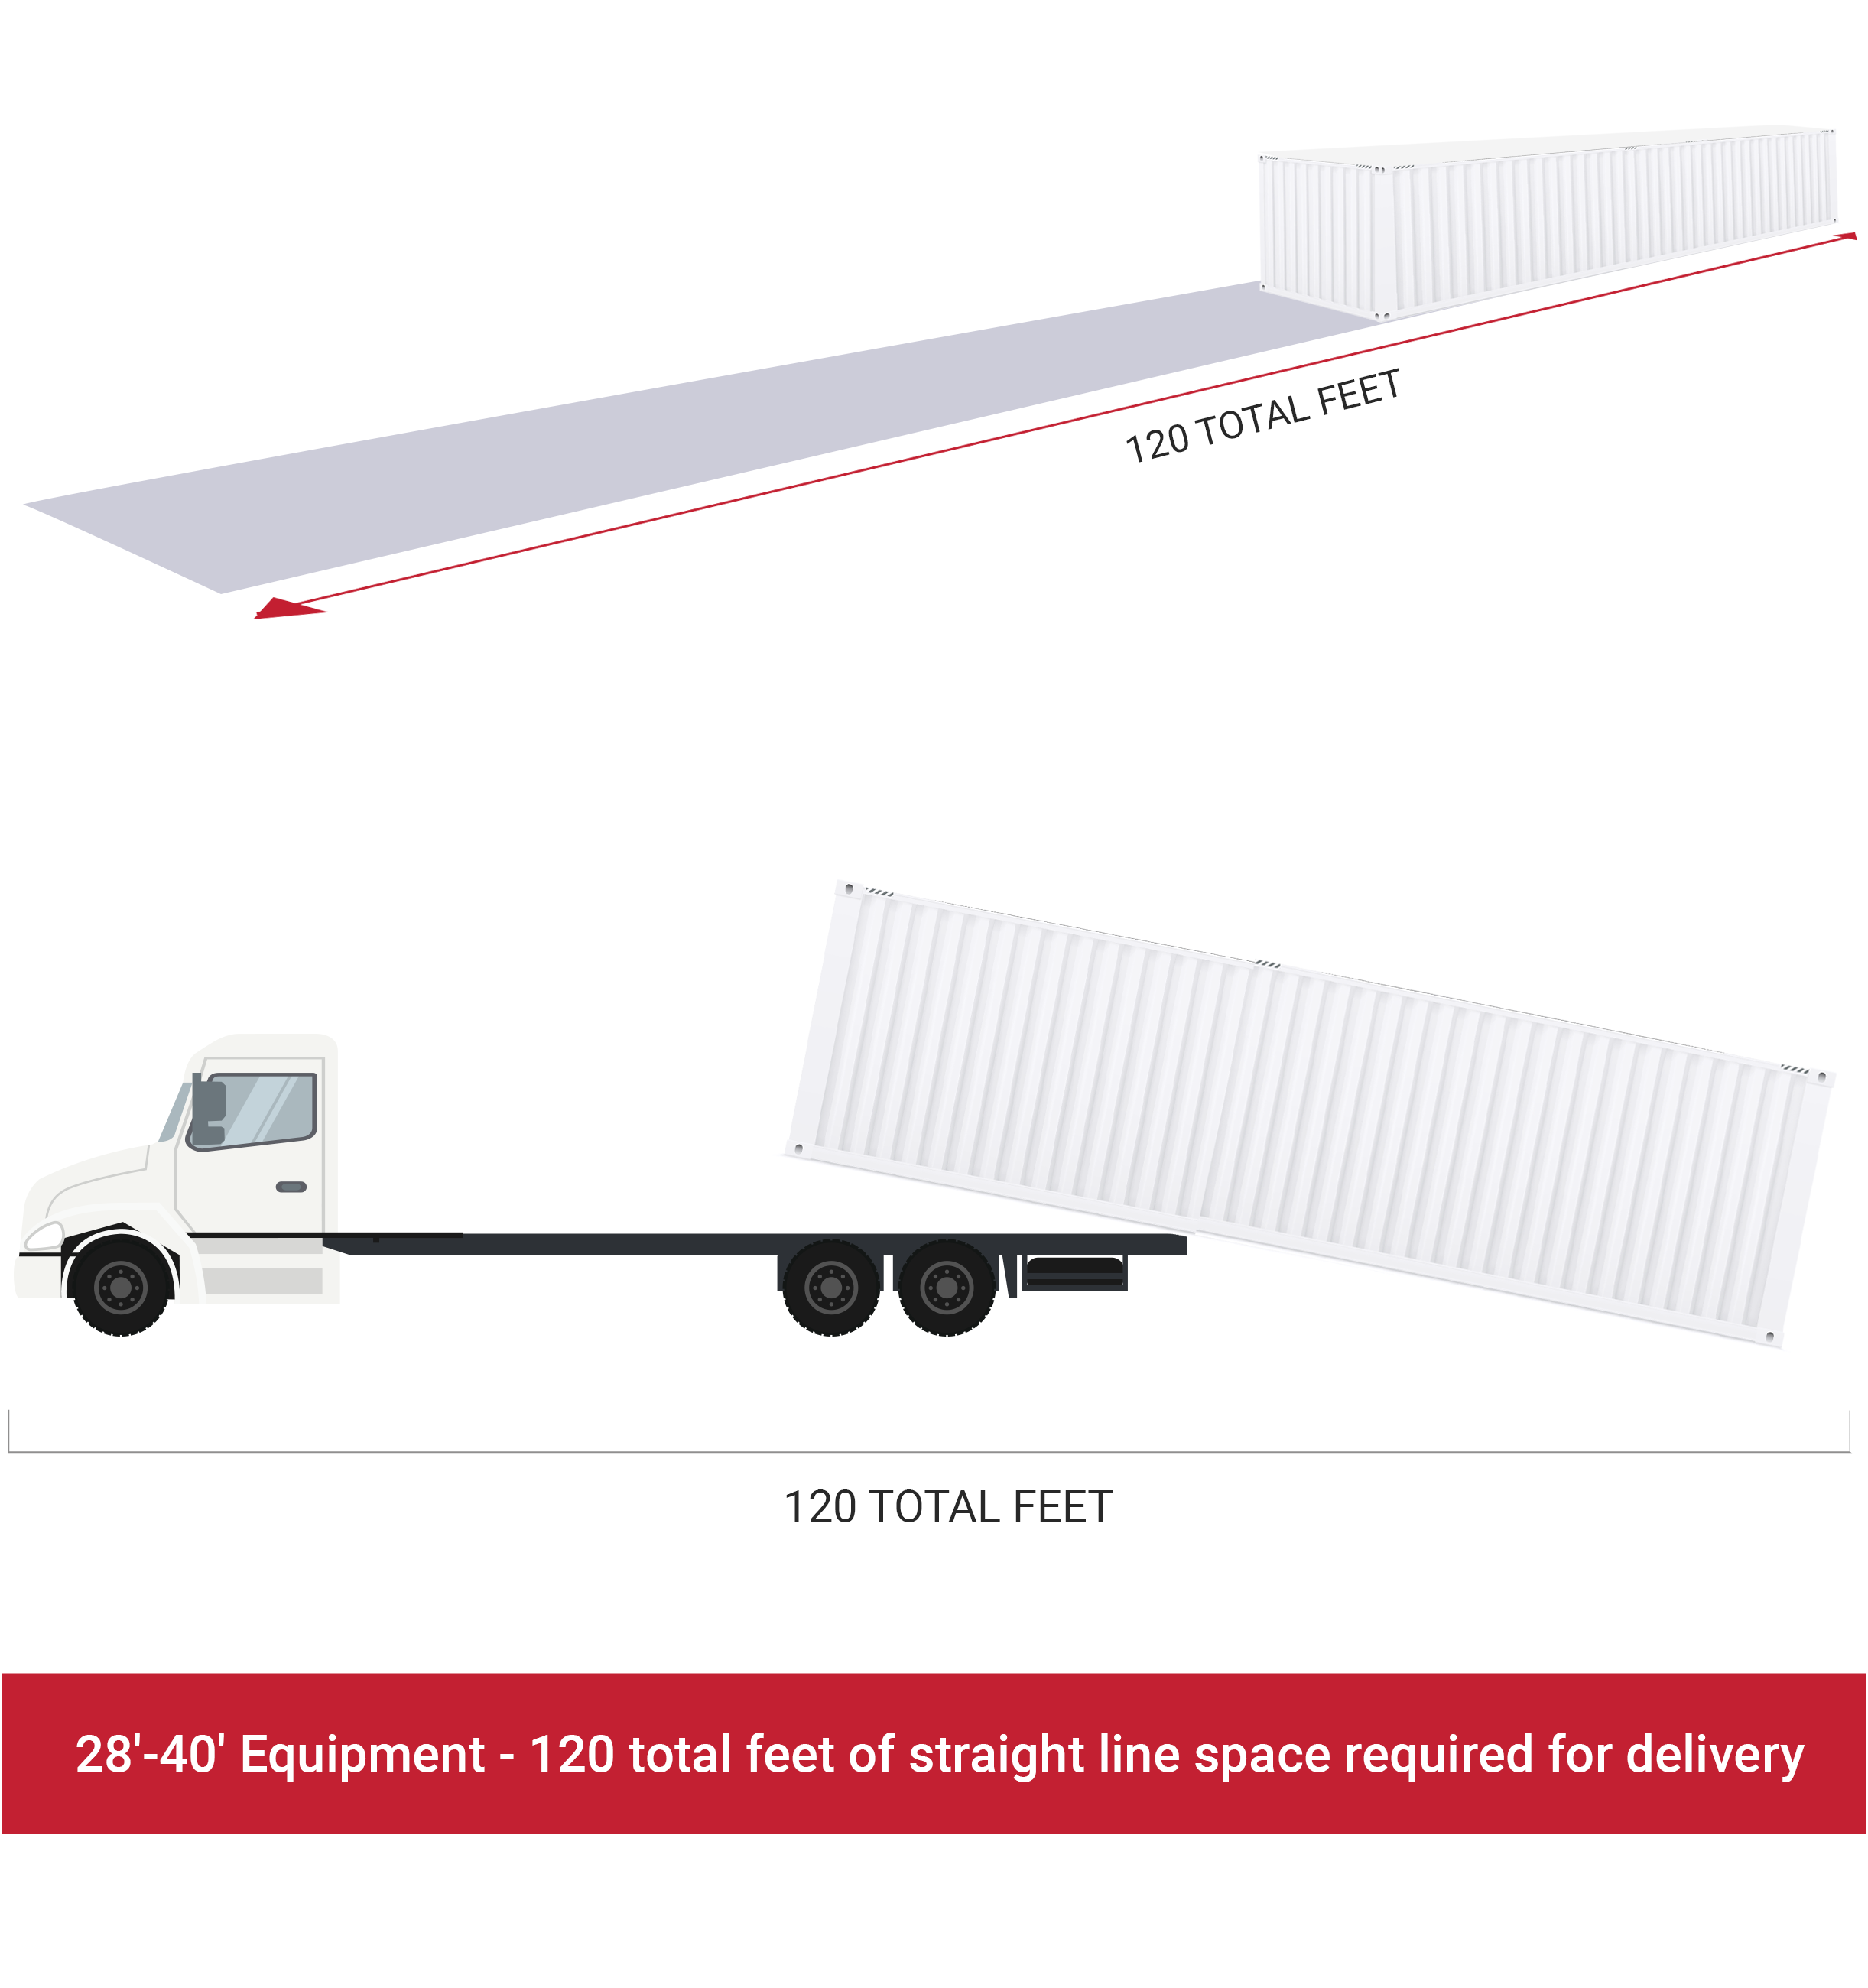 60ft Delivery Clearance Zone